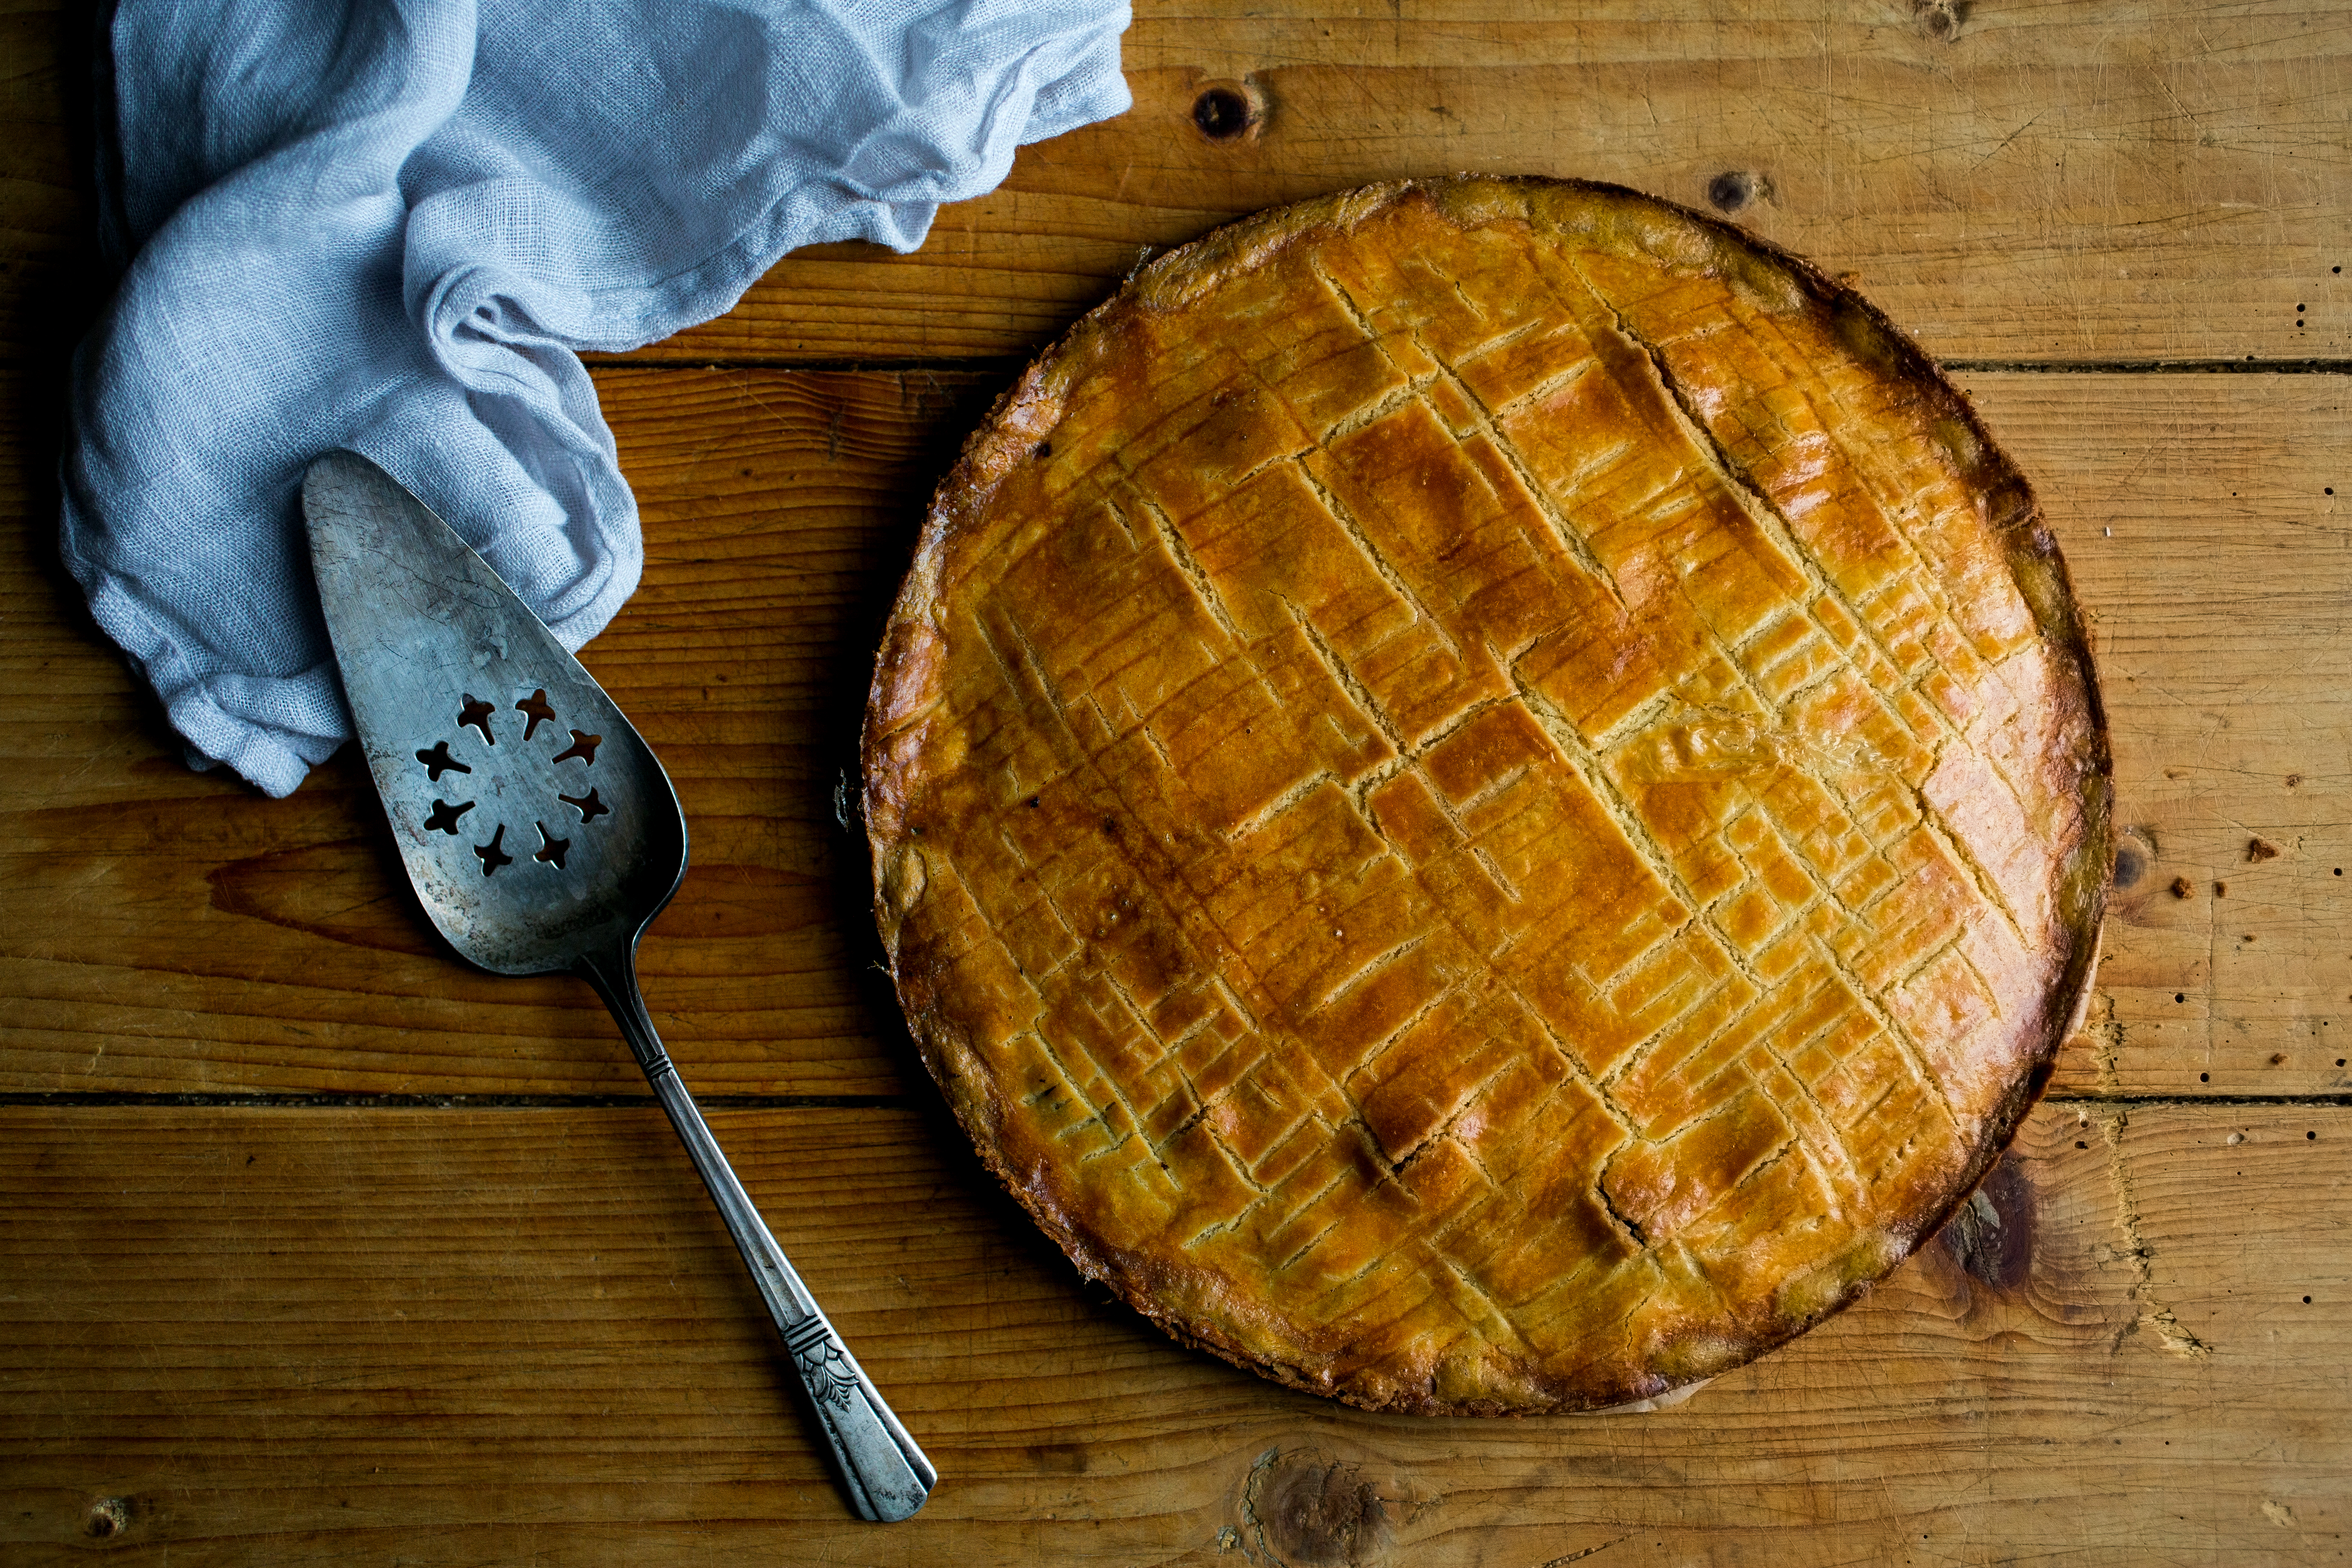 MELISSA CLARK, Cookbook Baking, Gateau Breton Adapted from Patisserie Made Simple by Edd Kimber